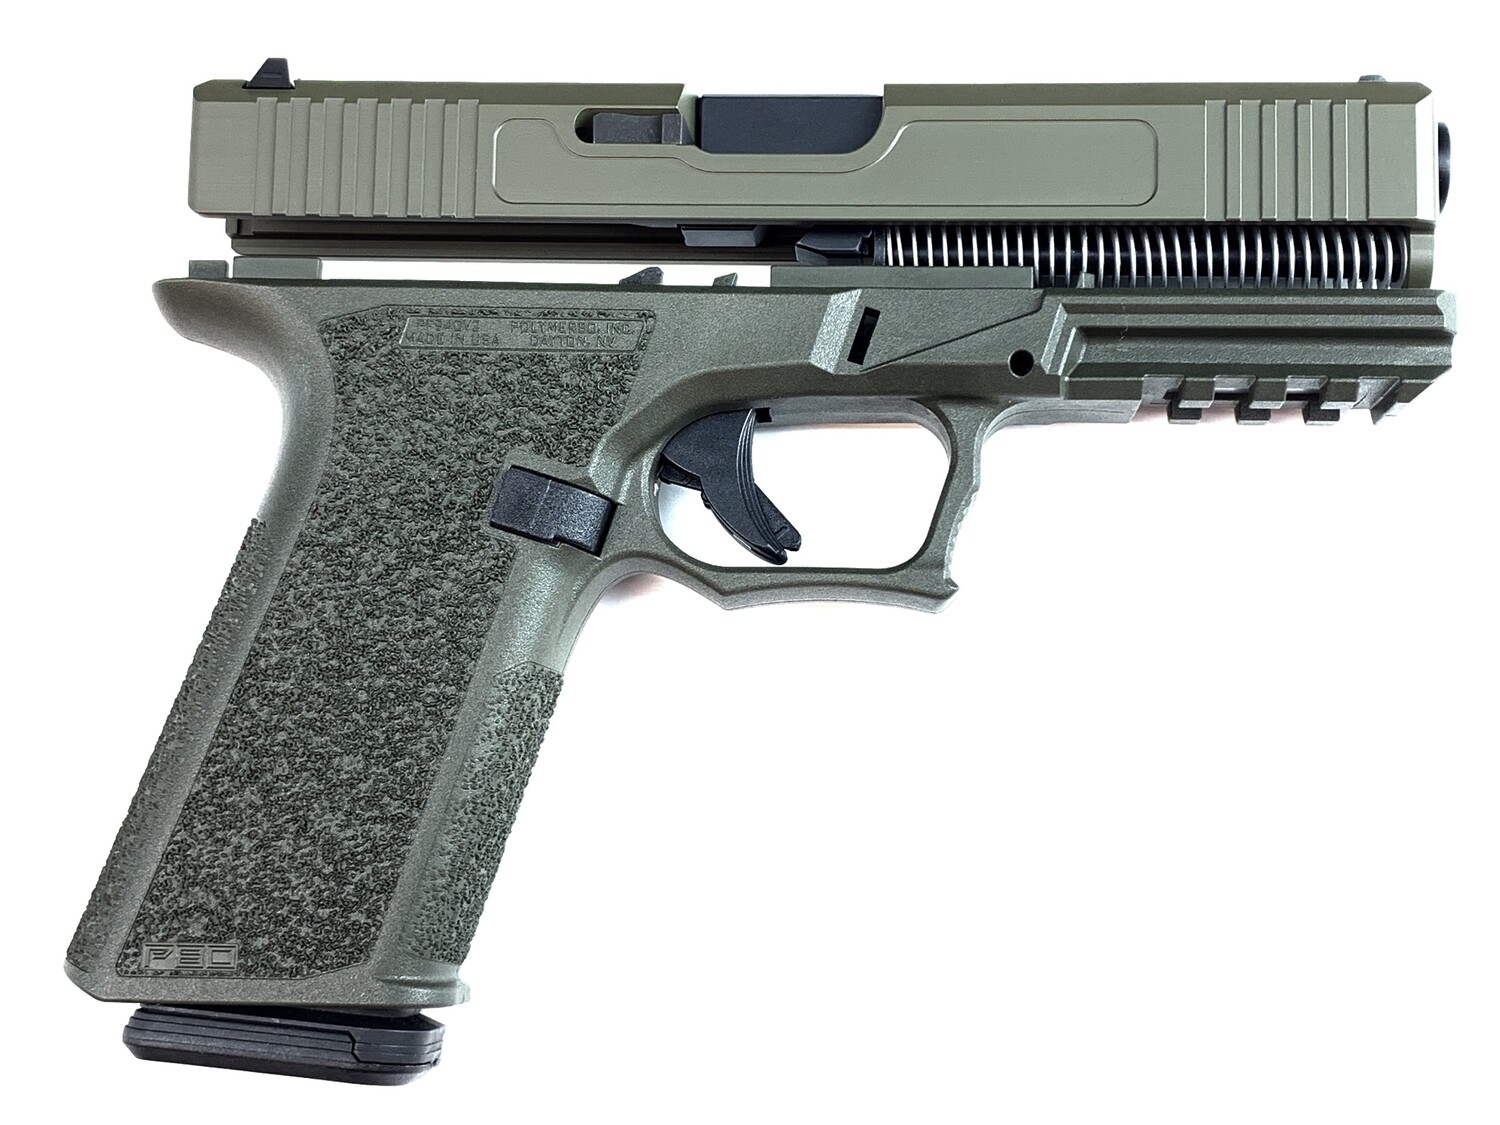 Patriot G17 80% Pistol Build Kit 9mm - Polymer80 PF940V2 - OD Green